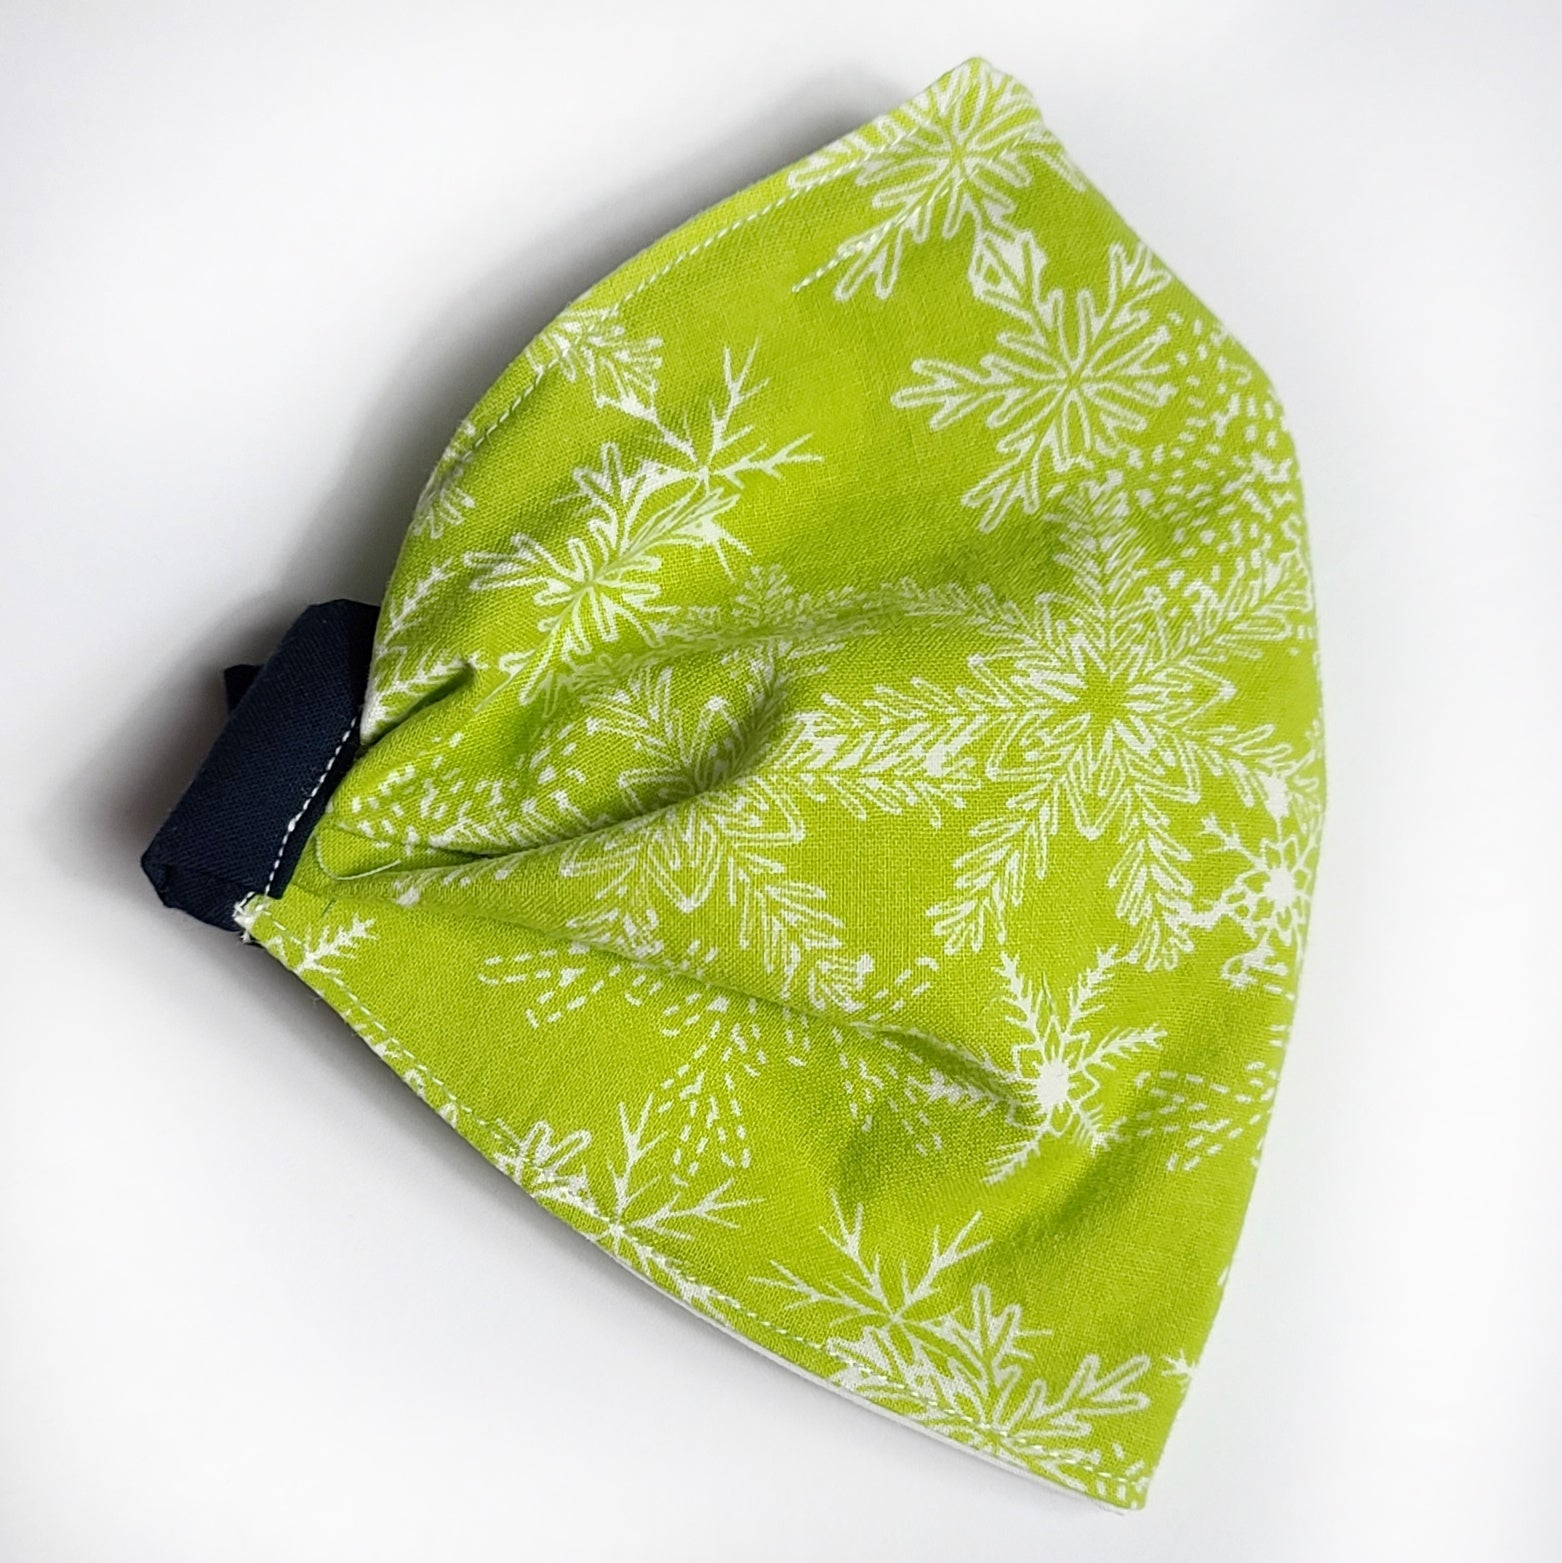 Adult Pleated: White Snow flakes on Lime Green